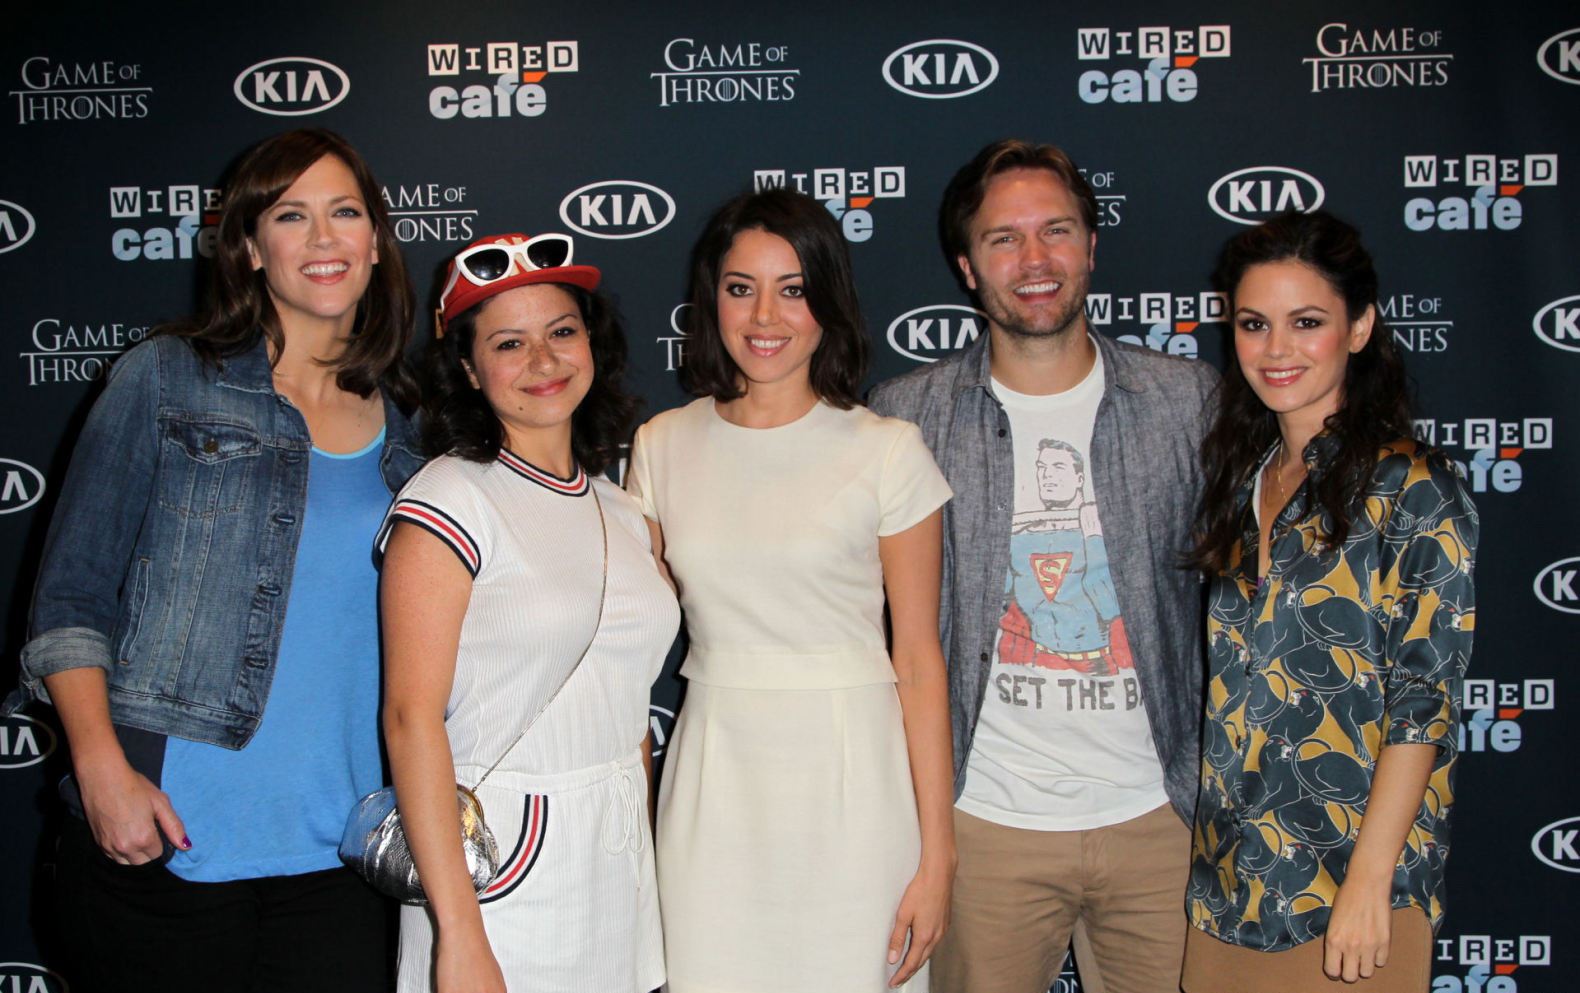 Alia Shawkat WIRED Cafe at Comic-Con in San Diego